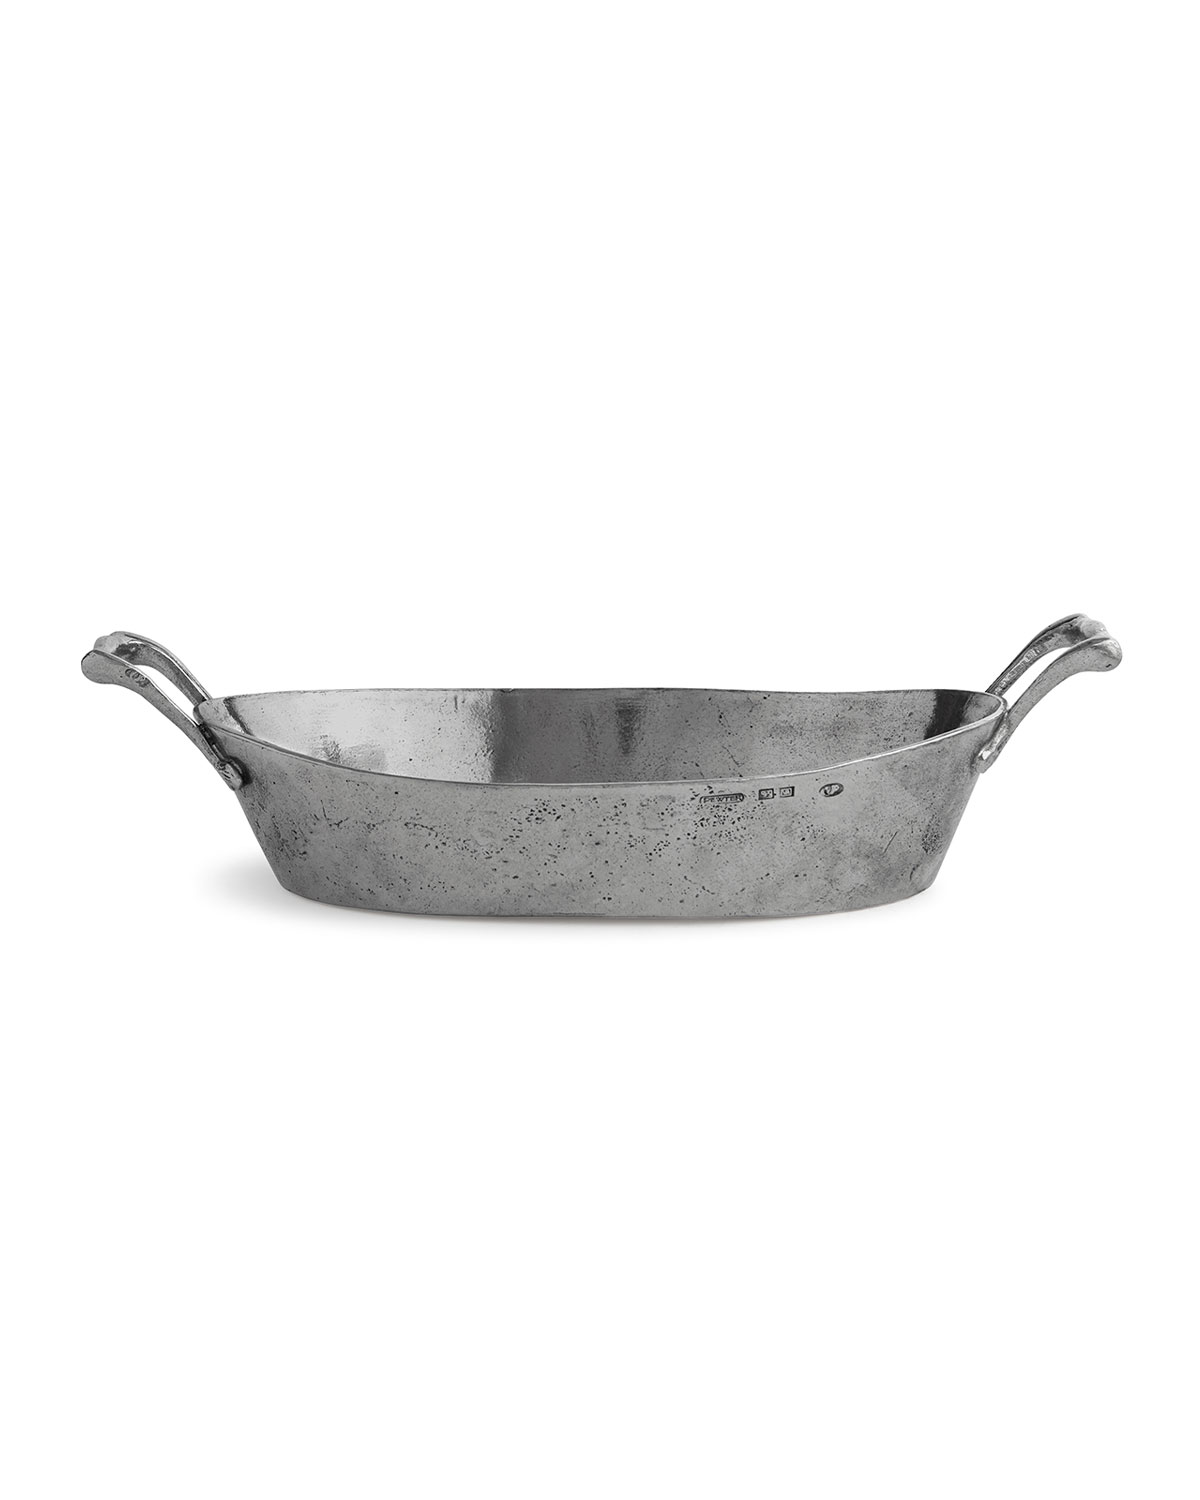 Arte Italica VINTAGE OVAL BOWL WITH HANDLES